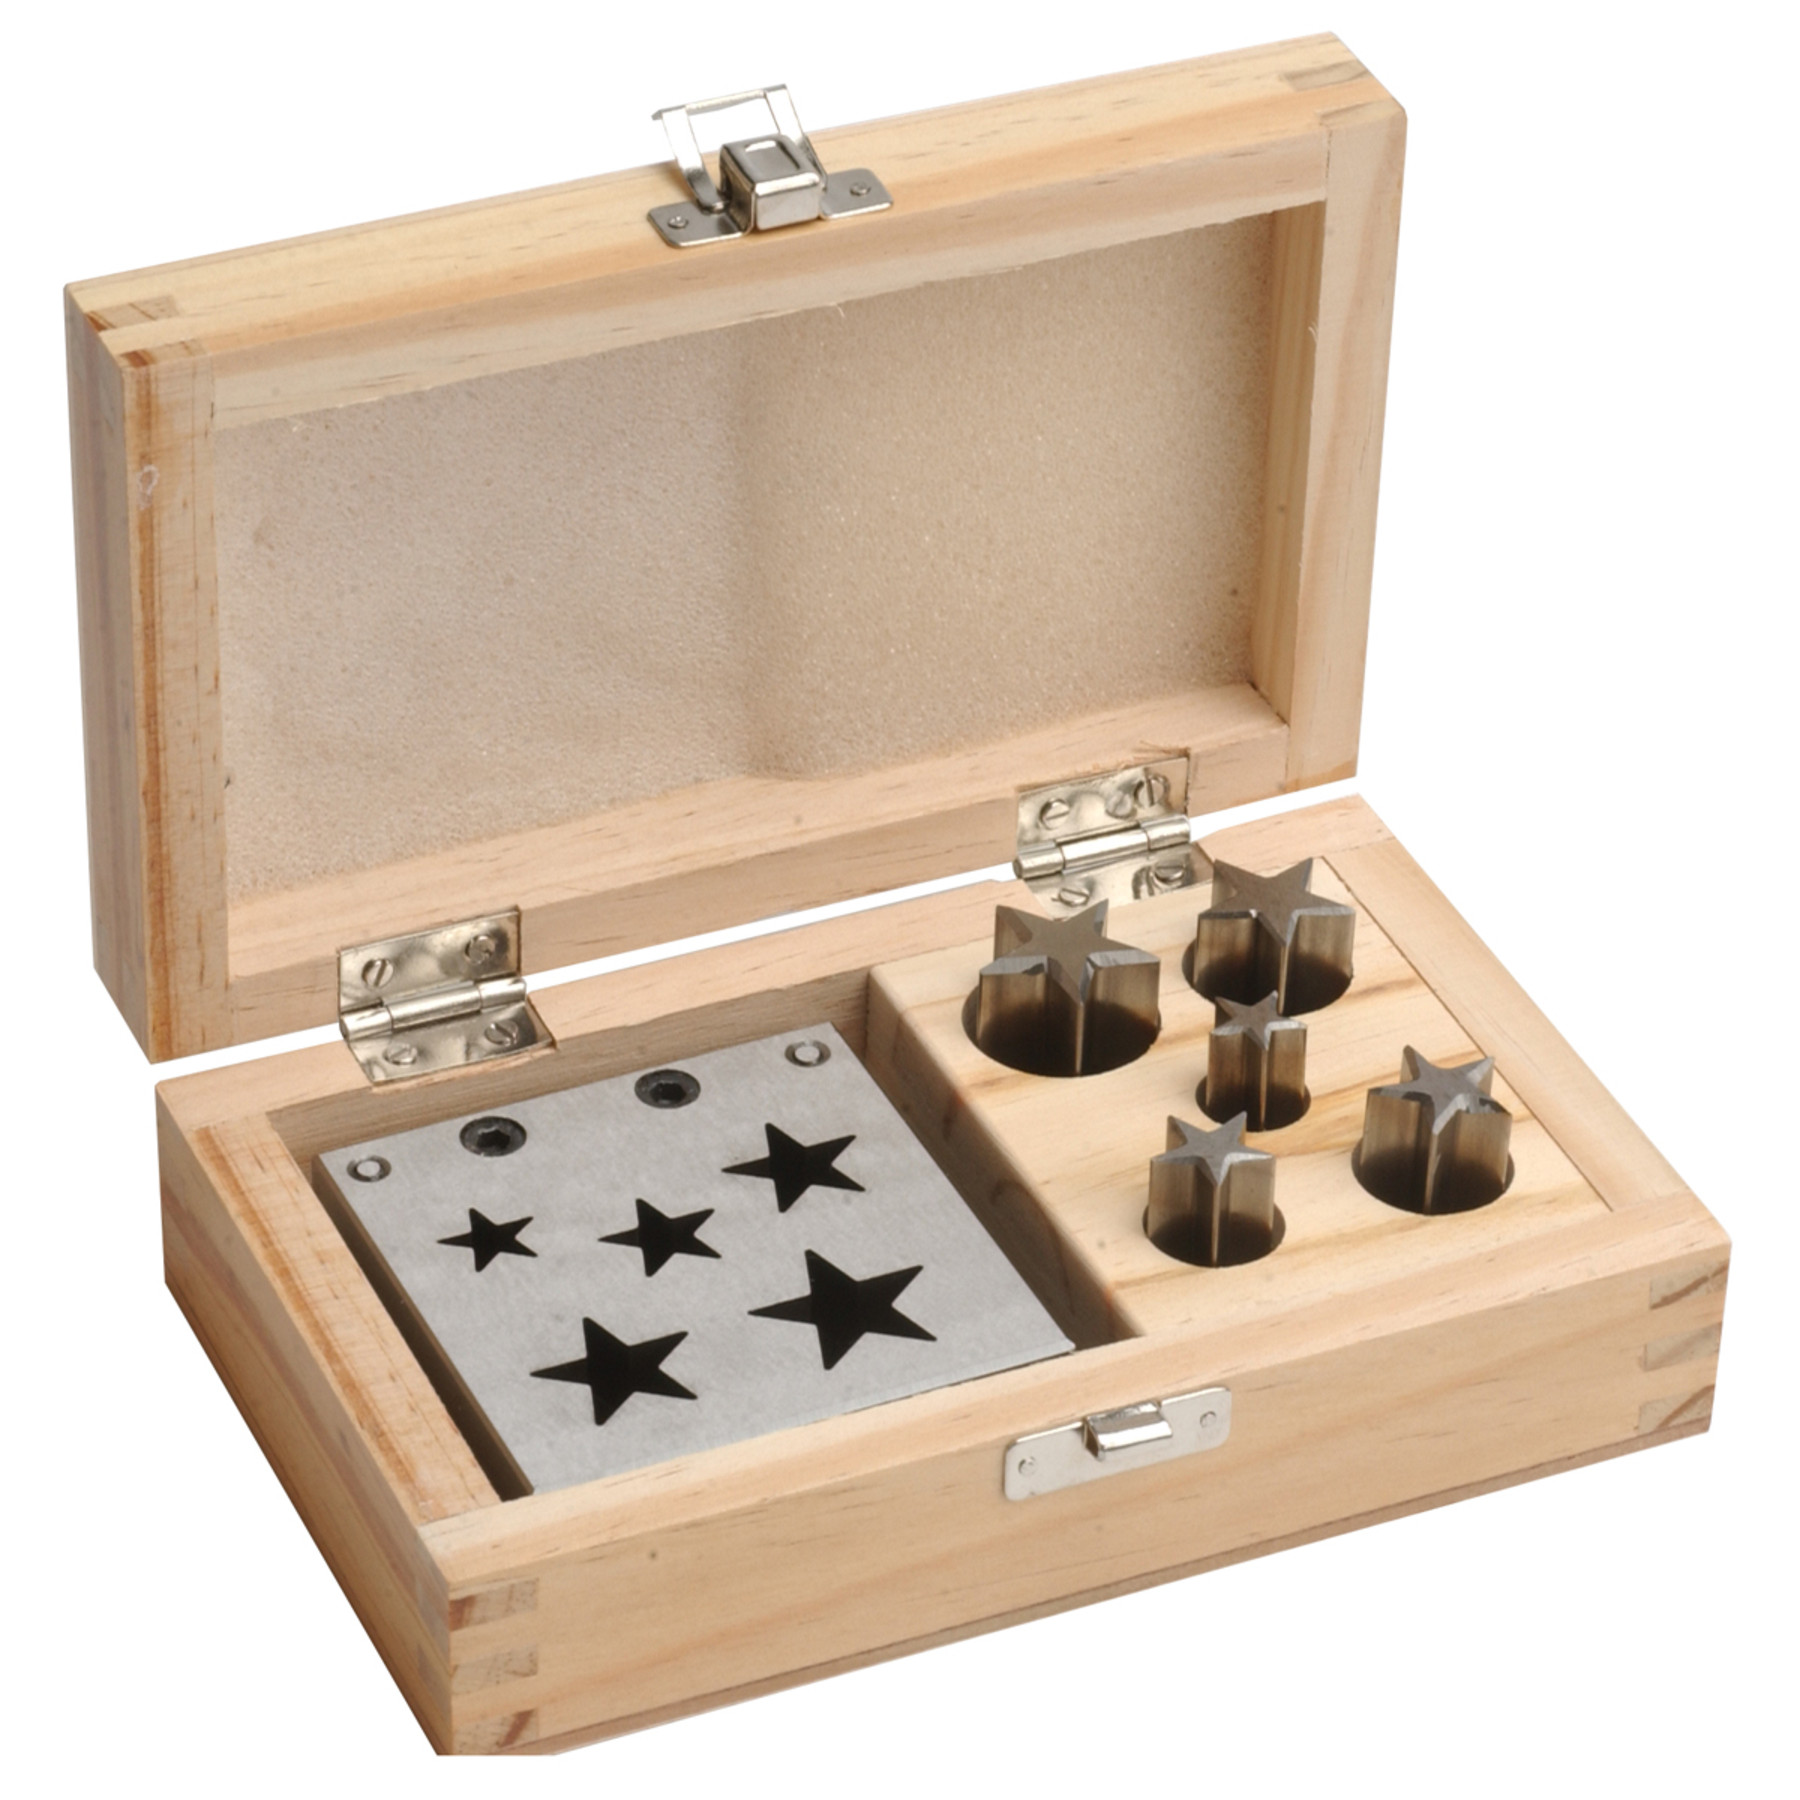 Star Shaped Set Of 5 Disc Cutters In Wood Box Ottofrei Com